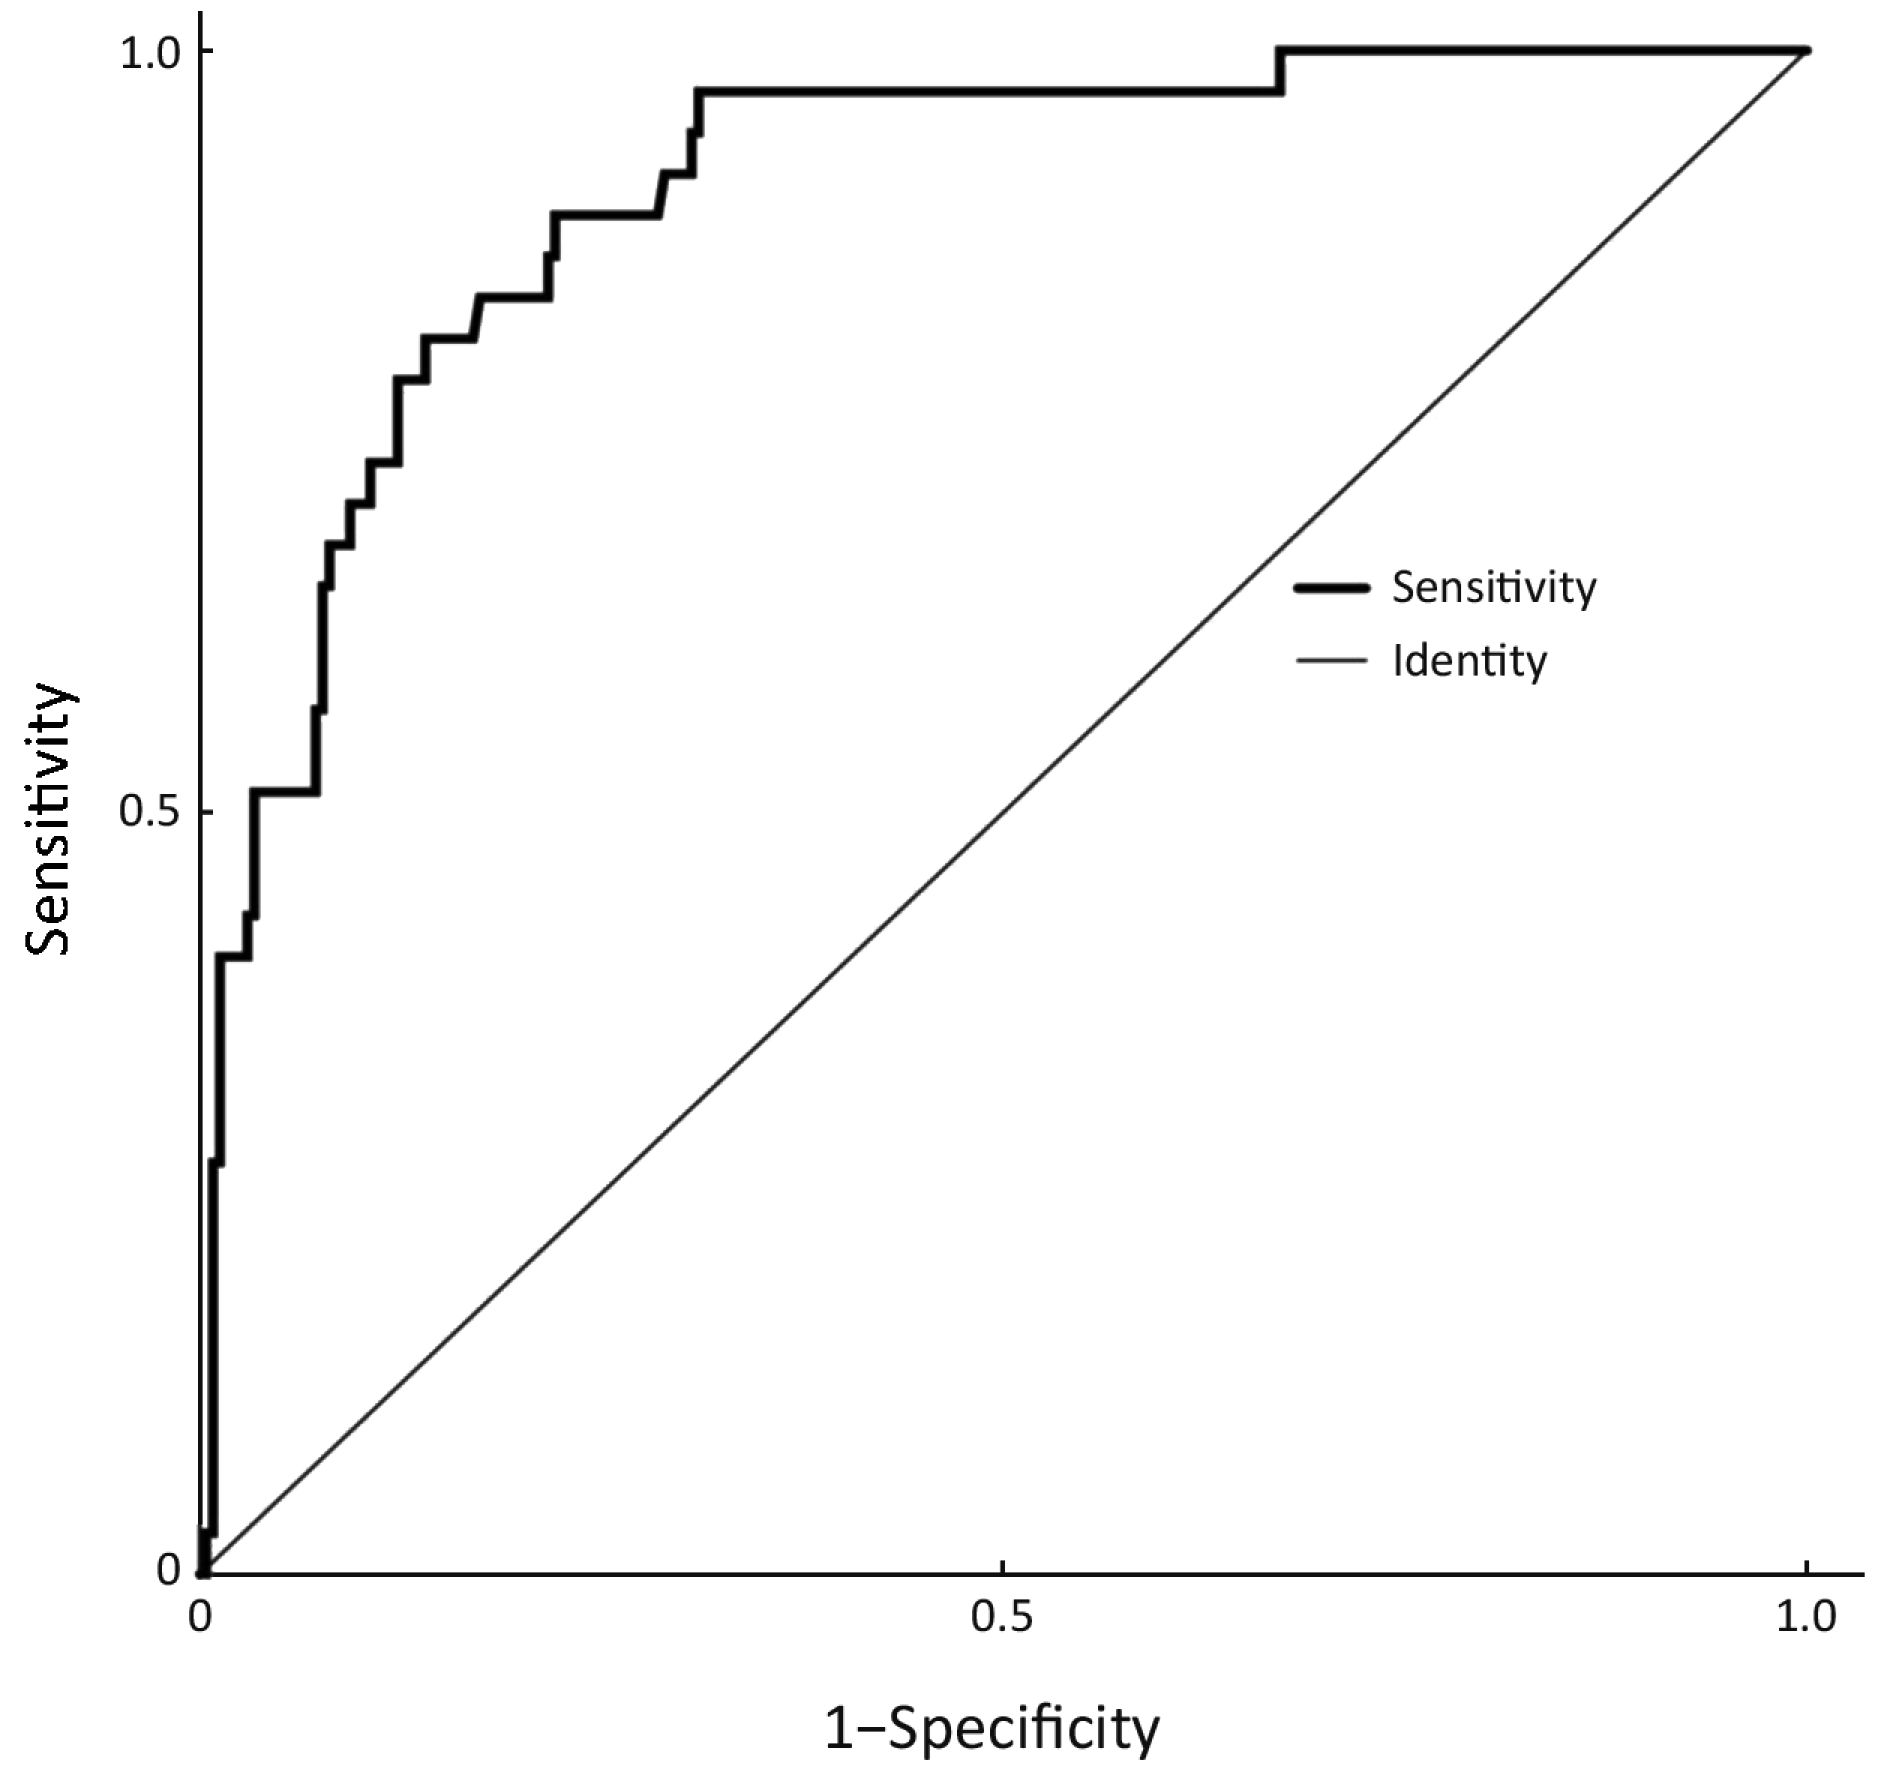 Construction and external validation of a nomogram that